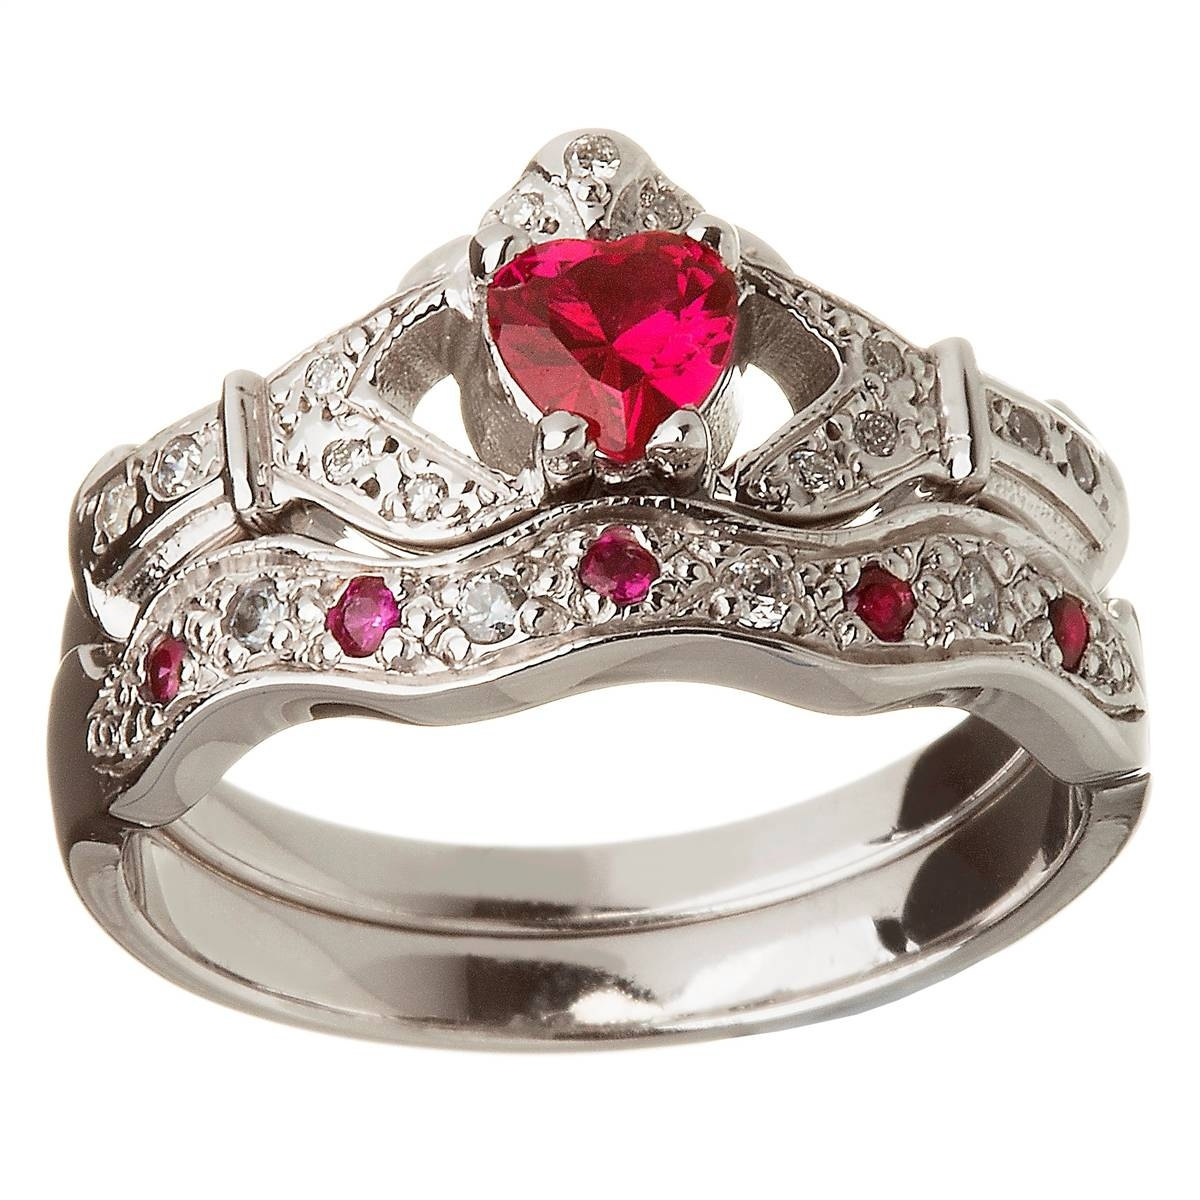 14K White Gold Ruby Set Heart Claddagh Ring & Wedding Ring Set Throughout Irish Engagement Ring Sets (View 3 of 15)